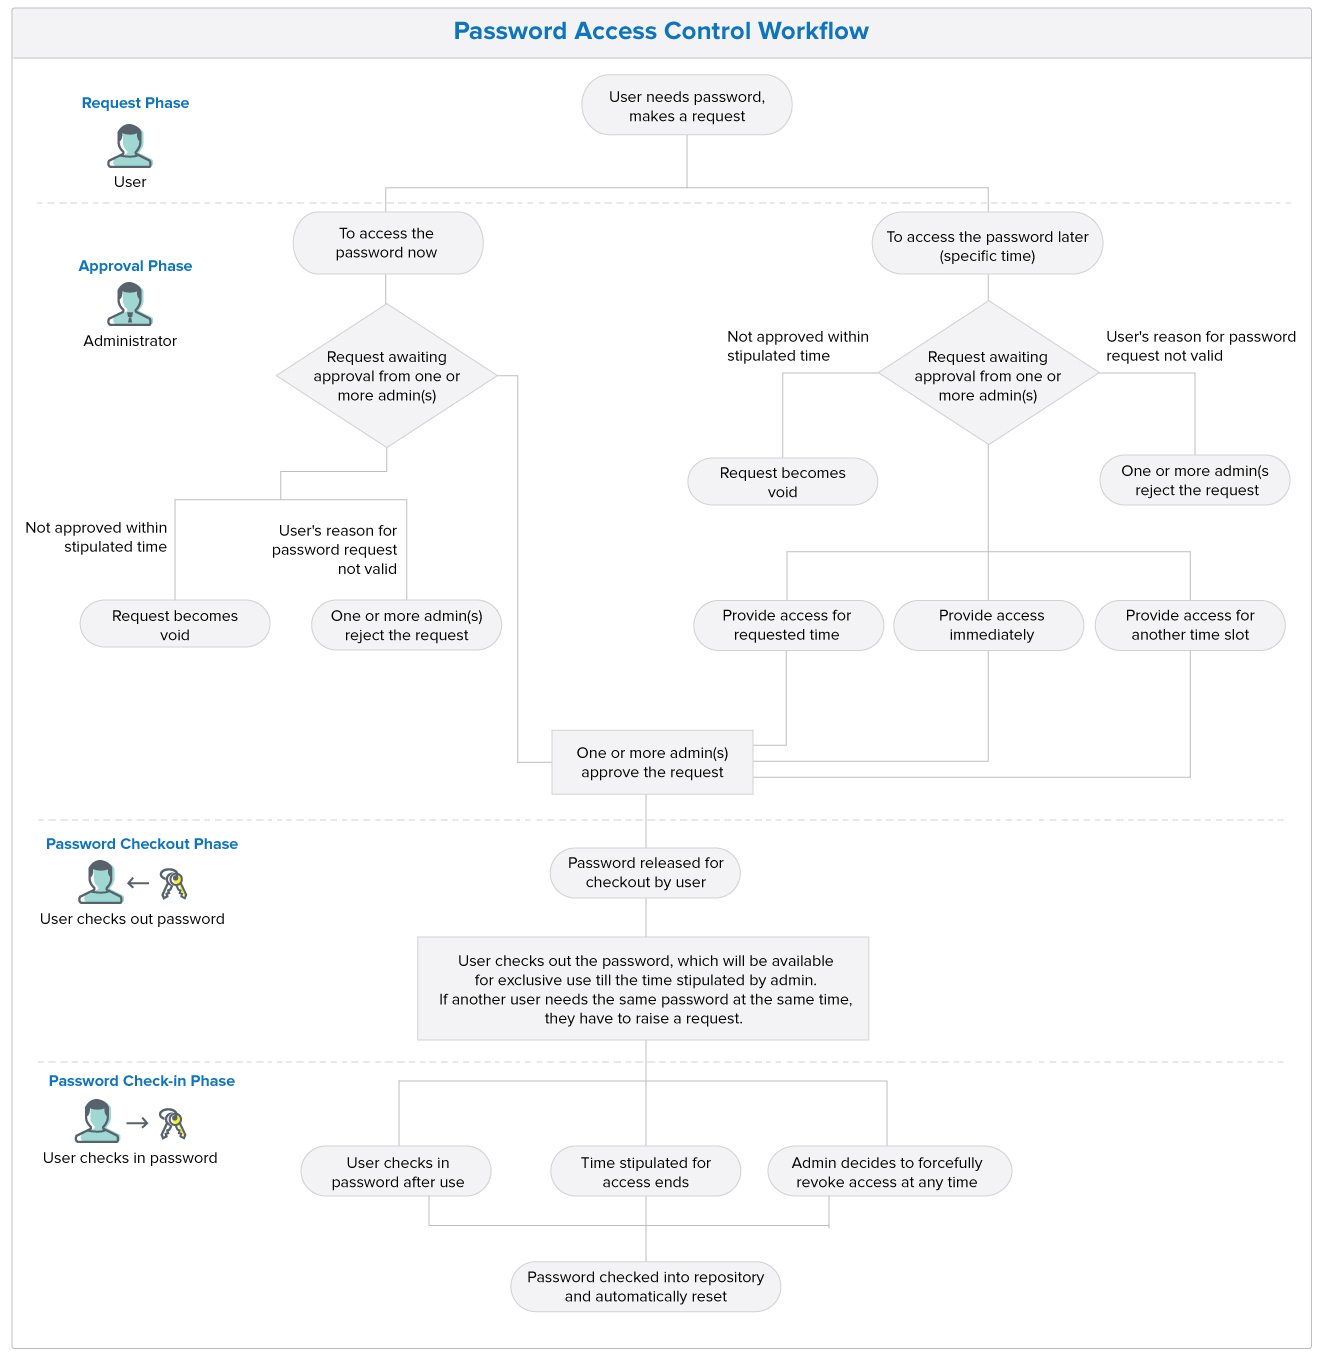 Access Control Workflow